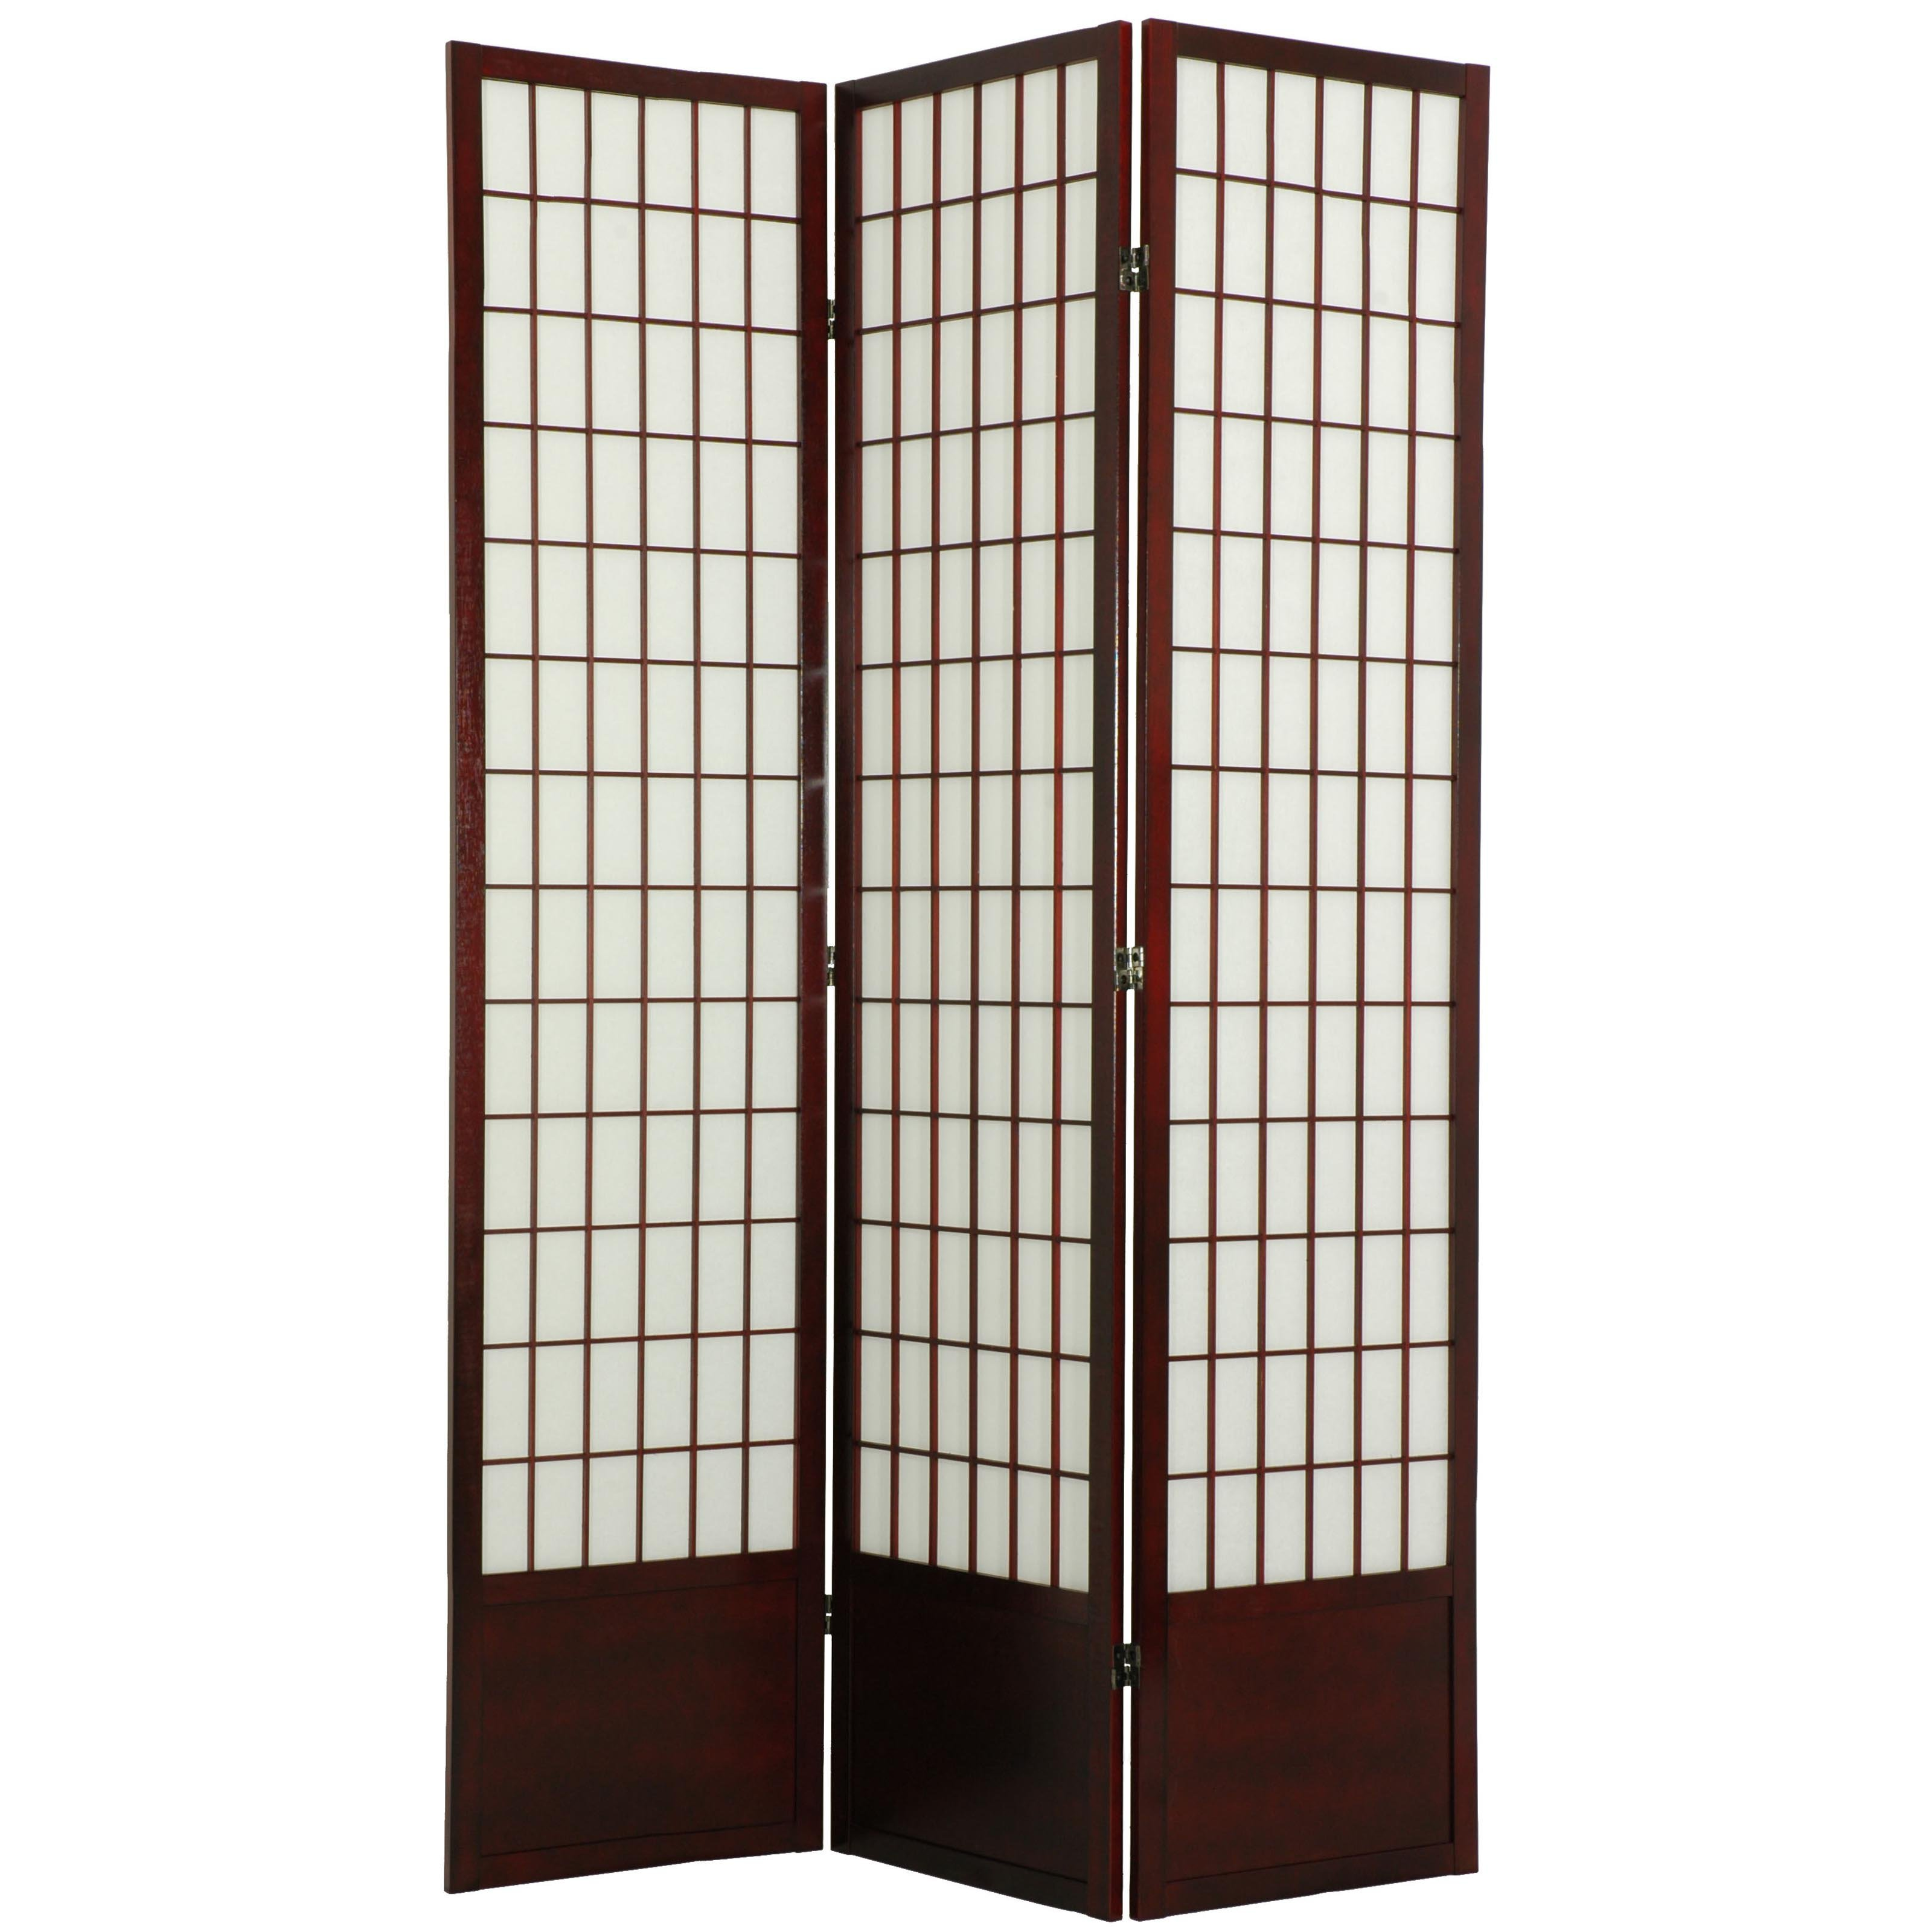 Oriental Furniture Window Pane Room Divider - 84 inch